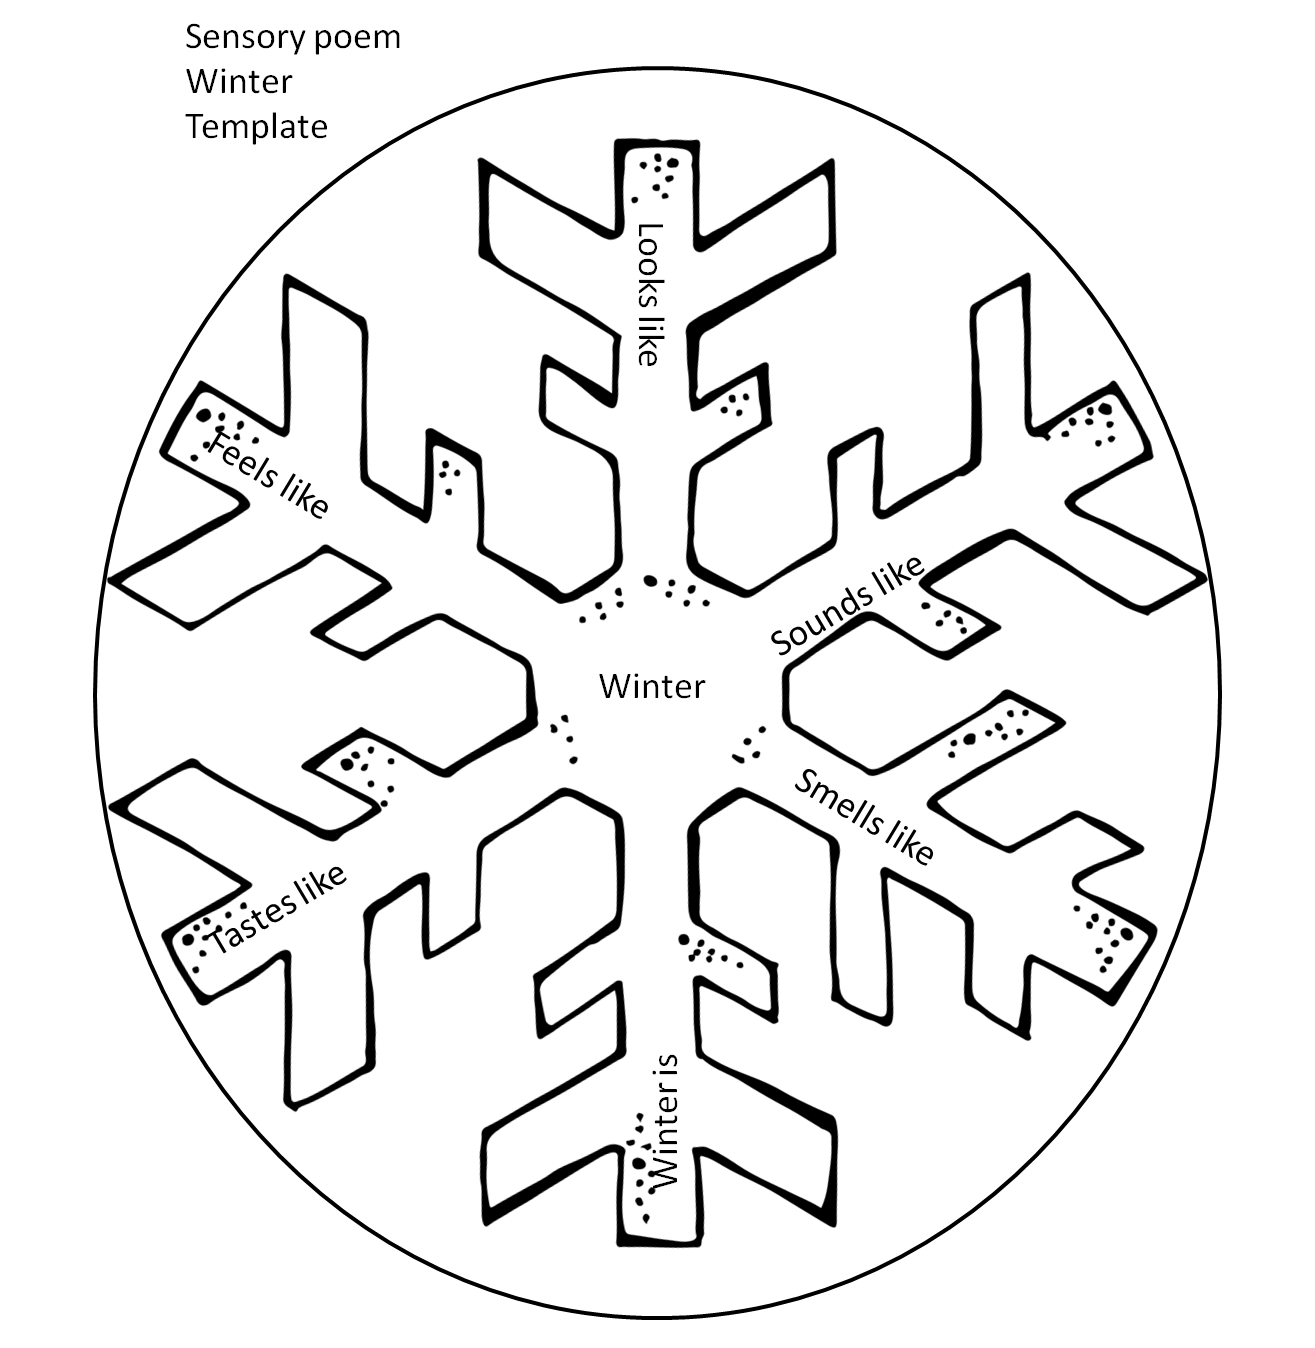 Kid catching snowflake on tongue clipart black and white transparent Poetry Unit Updated! | First Grade Wow | Bloglovin' transparent